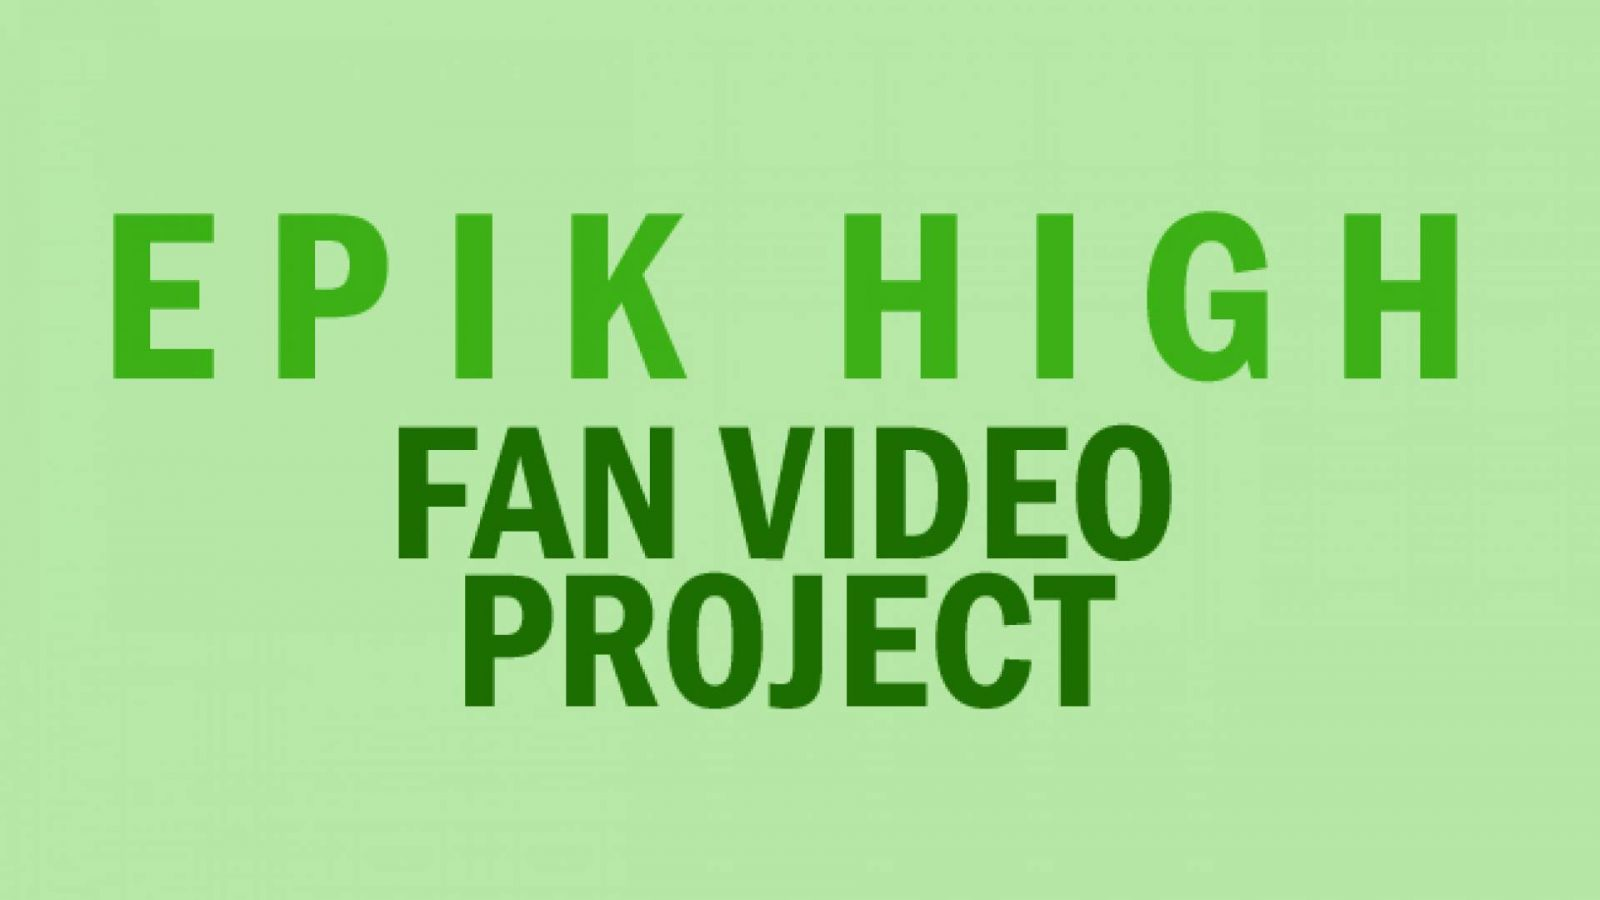 Epik High Video Project on valmis! © KoME